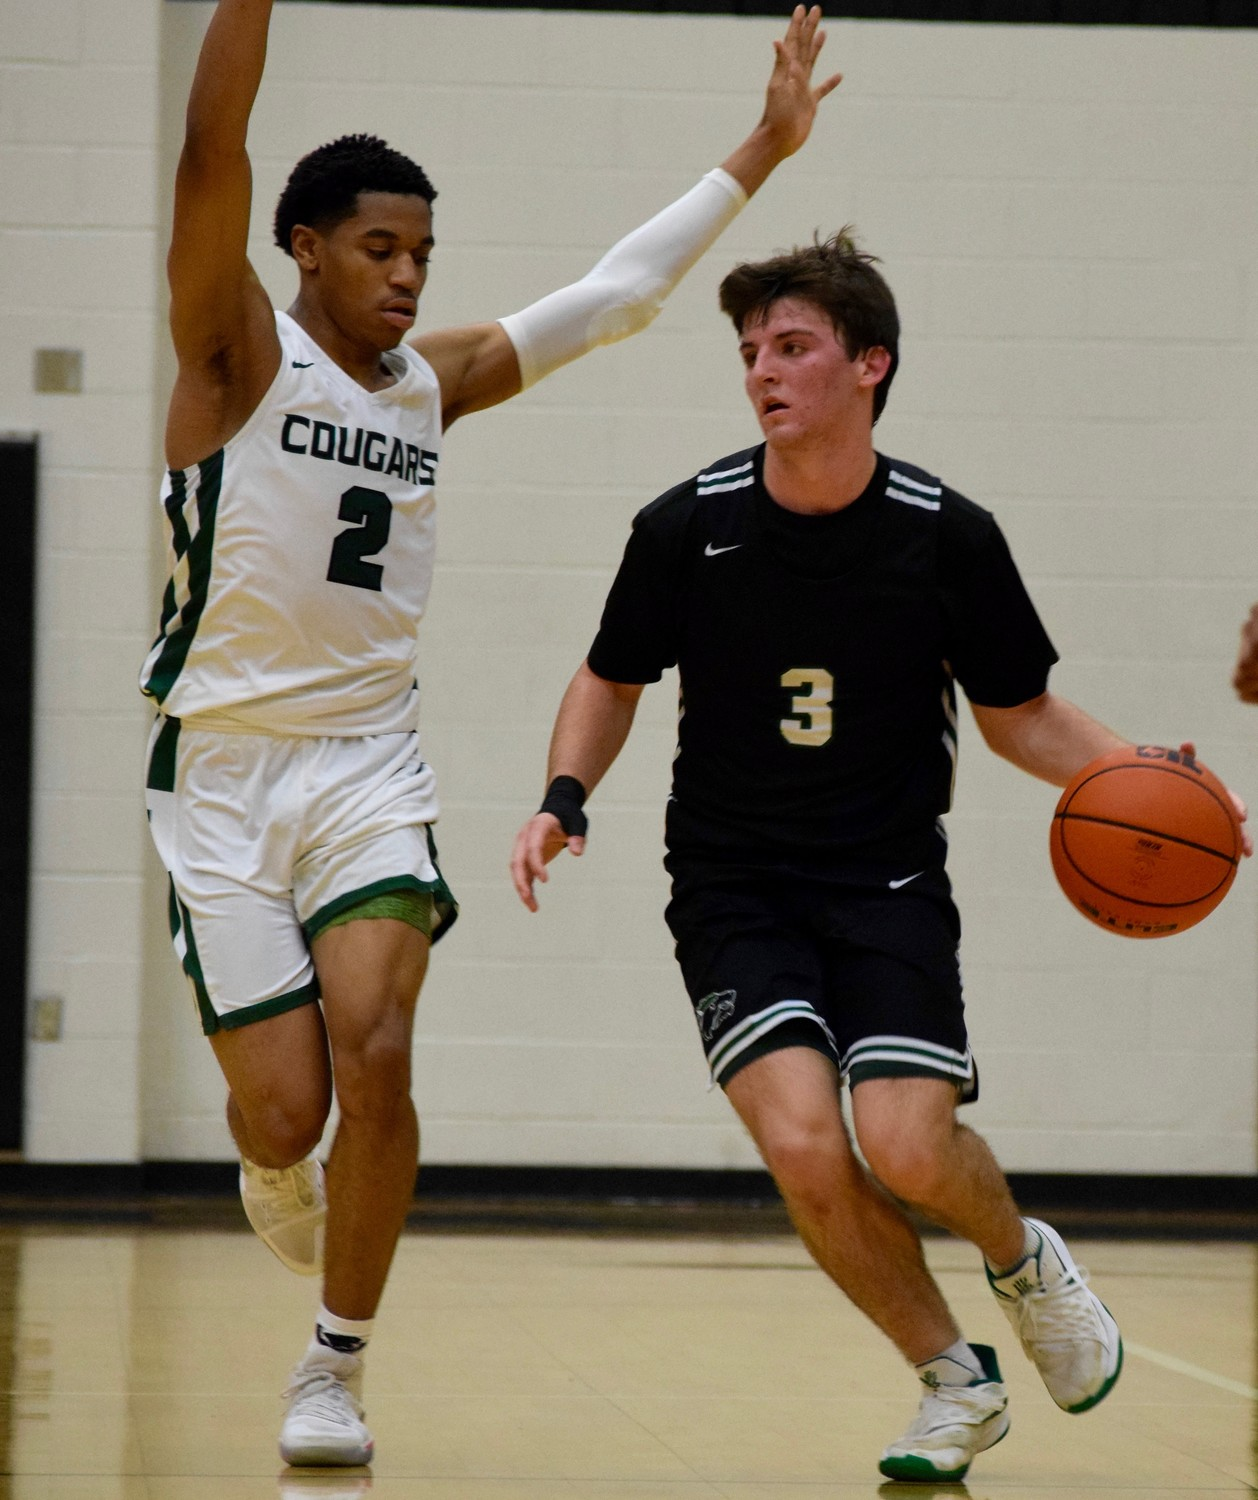 Karson Cater scored 11 points and Cedar Park beat Connally 60-53 on Friday night to take the top spot in District 17-5A and stay unbeaten in district play.